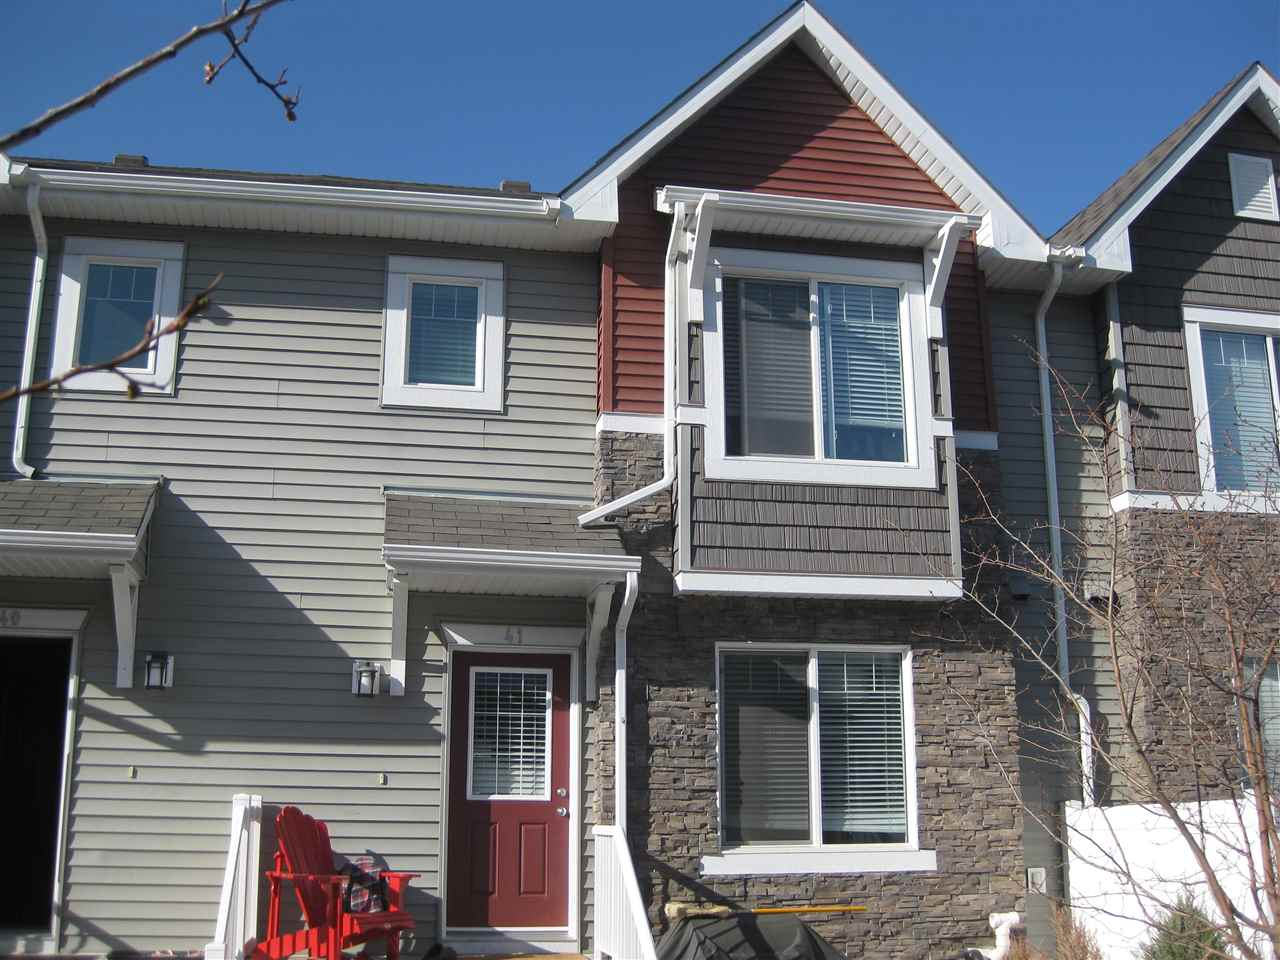 Main Photo: #41 3625 144 AV NW in Edmonton: Zone 35 Townhouse for sale : MLS(r) # E4016087